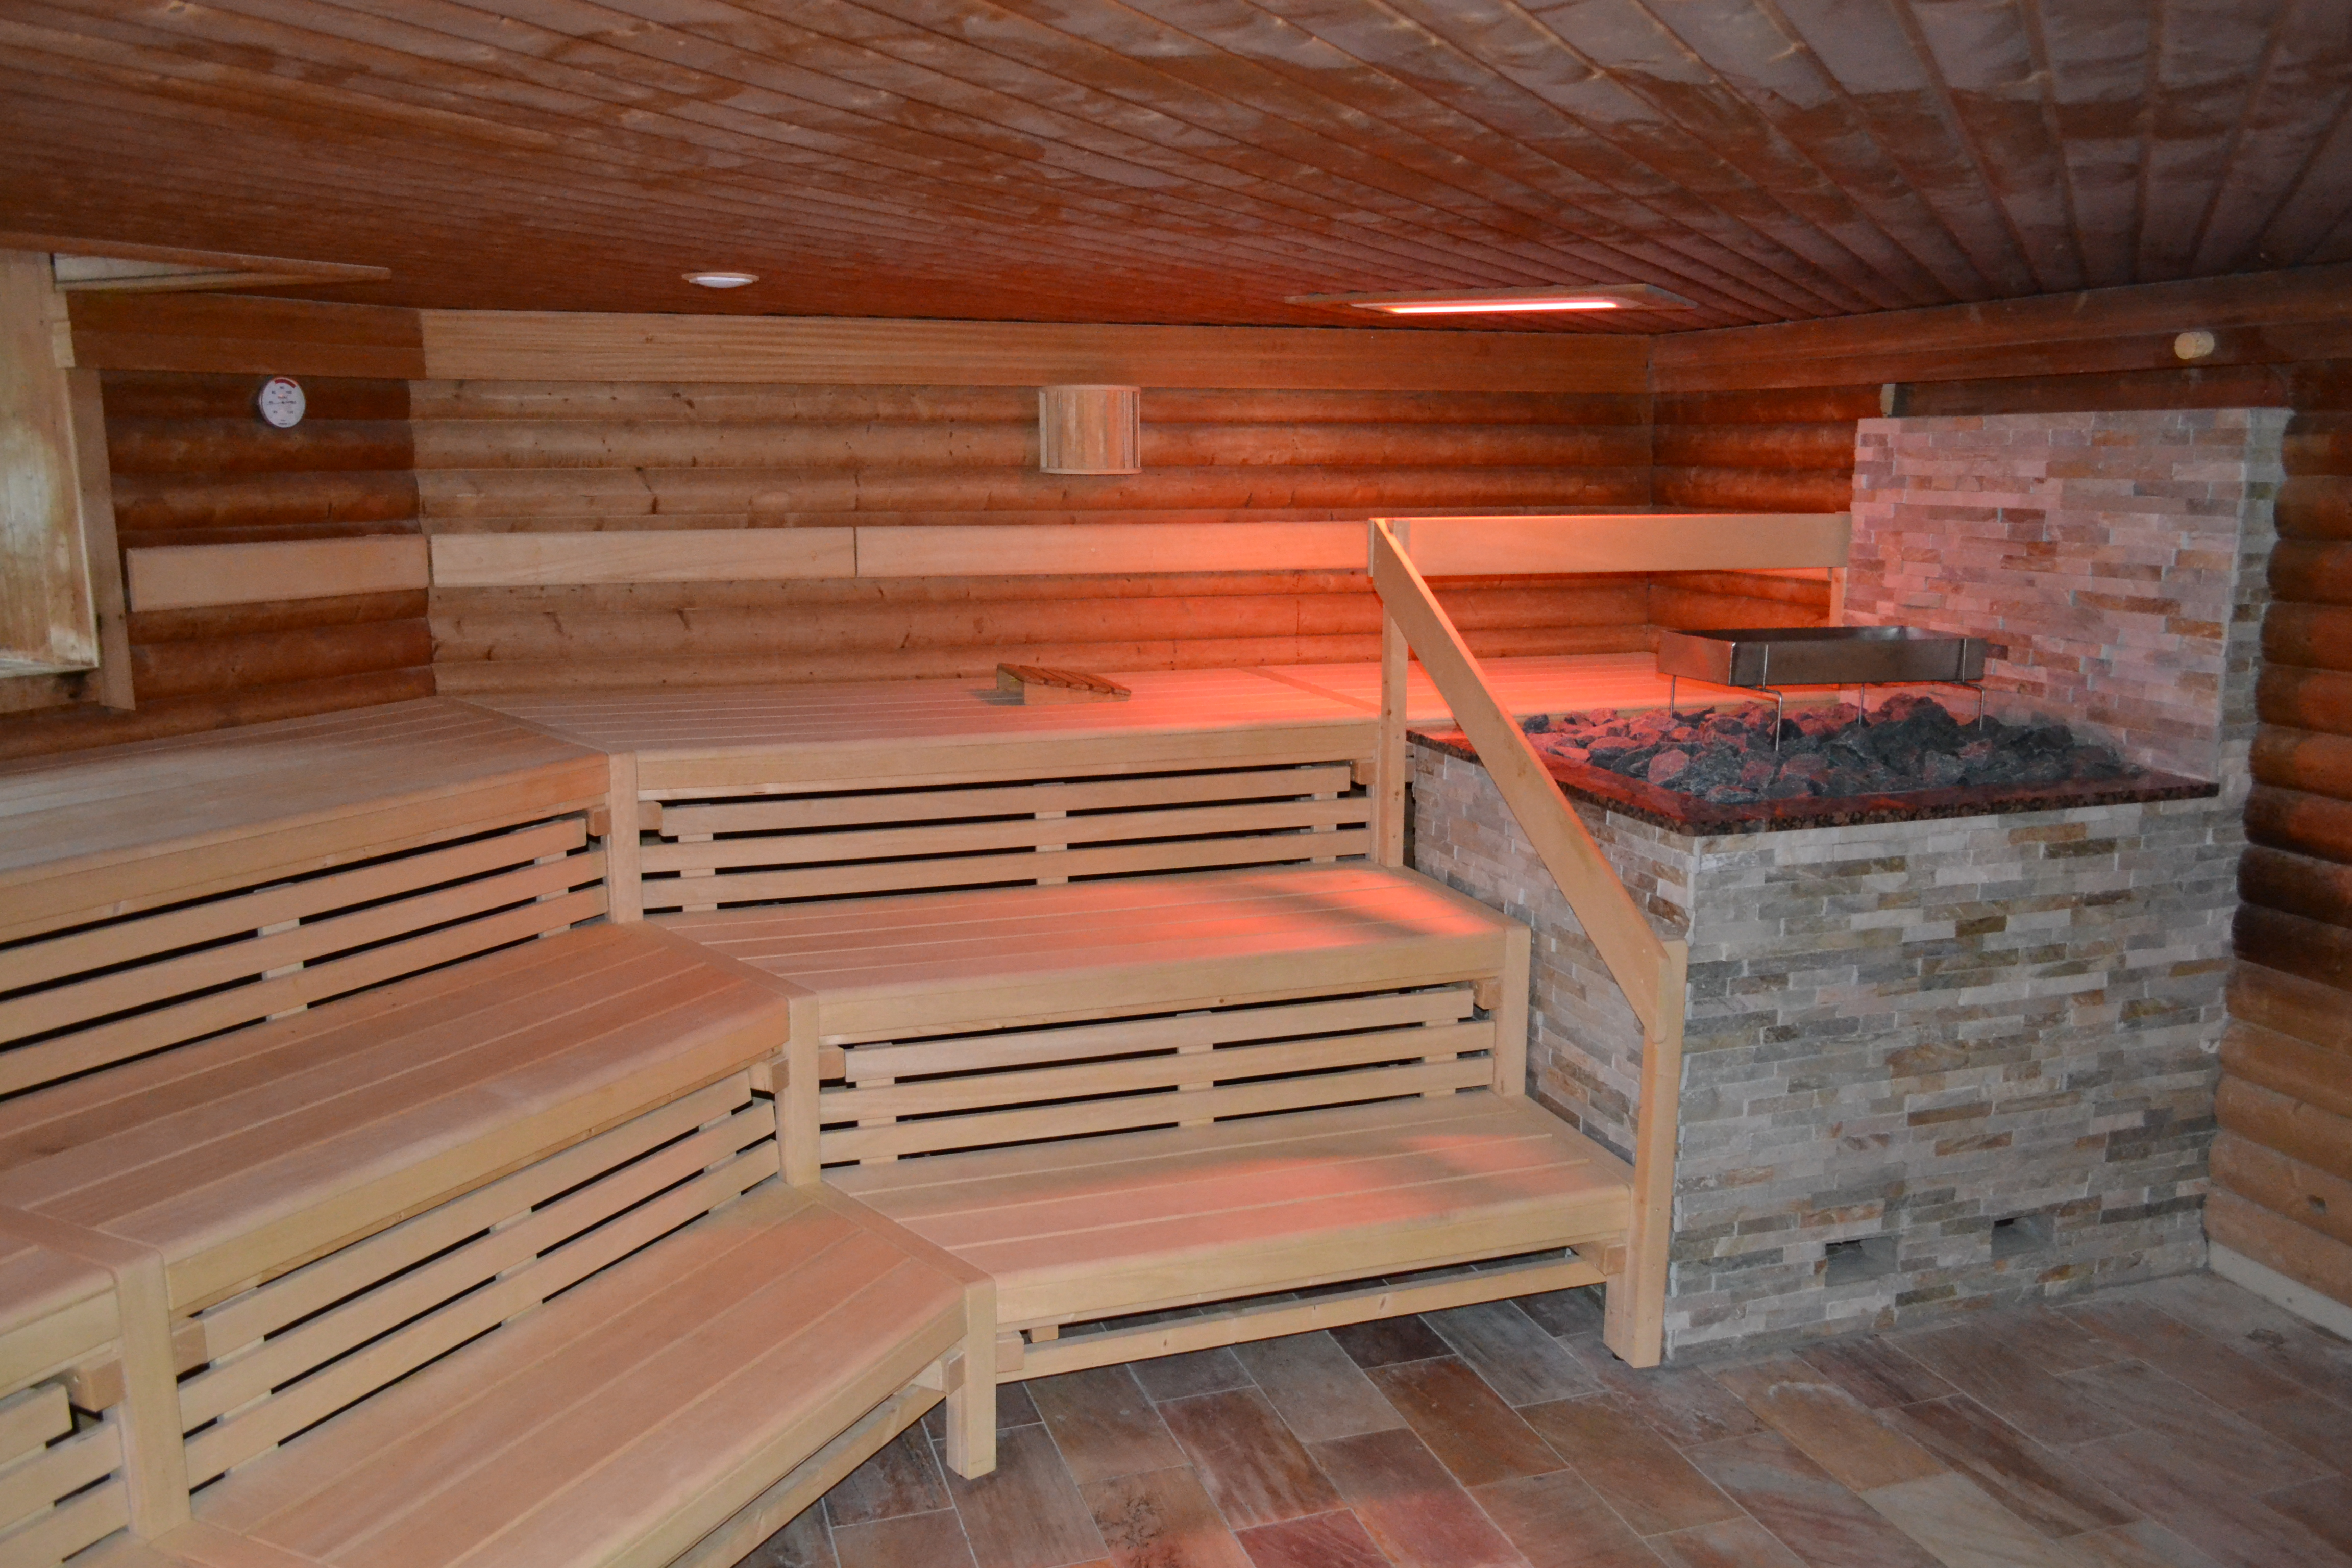 sauna special mitternachtssauna in leipzig am sachsen therme. Black Bedroom Furniture Sets. Home Design Ideas